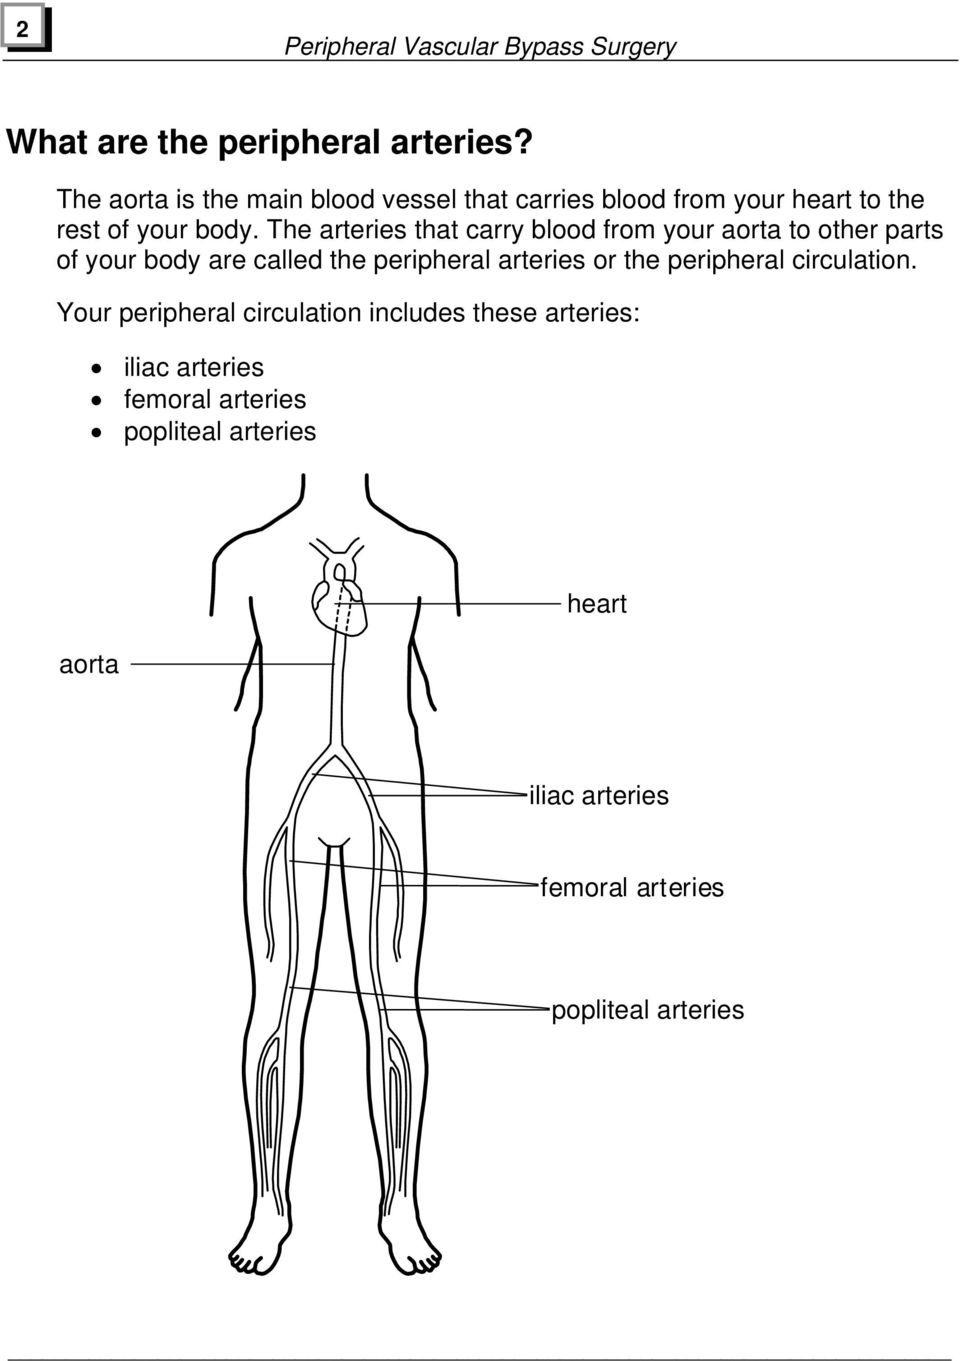 The arteries that carry blood from your aorta to other parts of your body are called the peripheral arteries or the